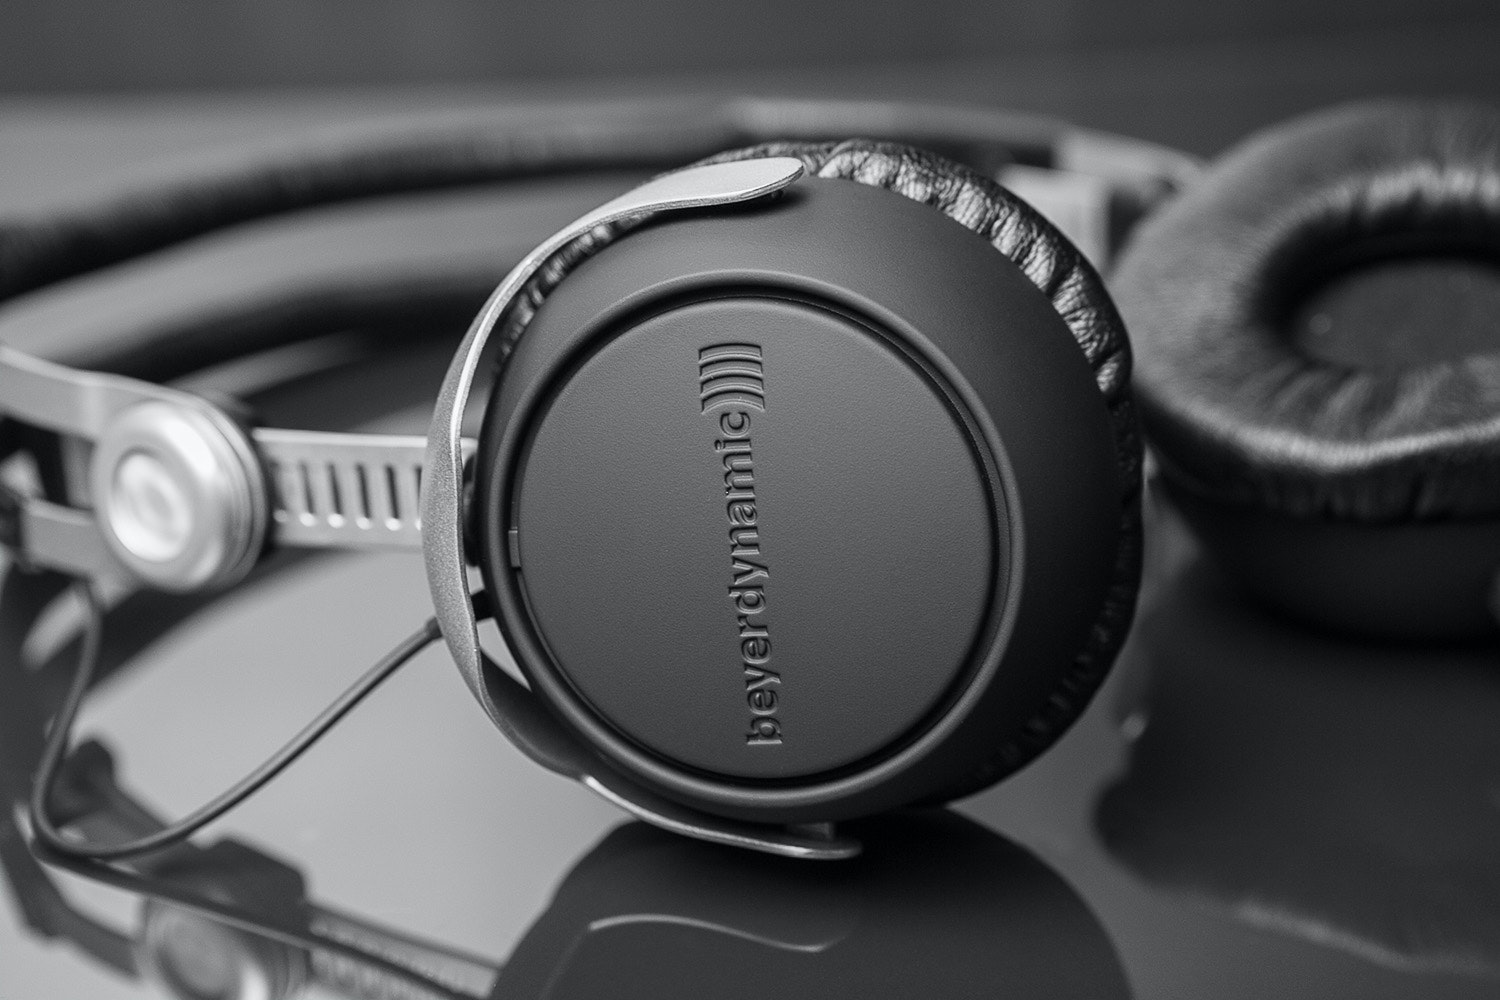 Beyerdynamic DT 1350 CC Model